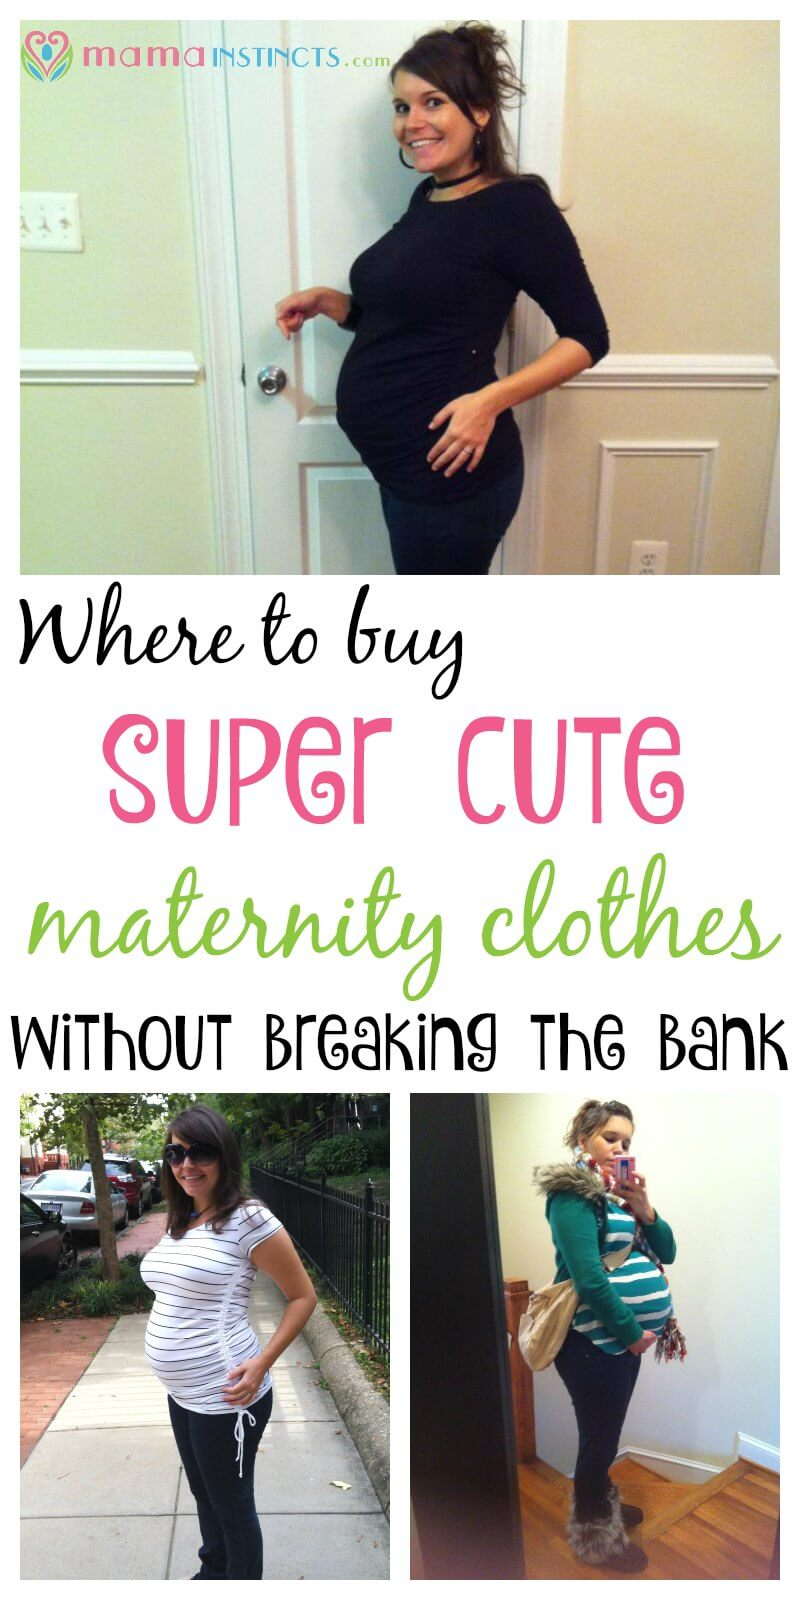 ee3ba1ceb707e Maternity clothes can be expensive but they don't have to be. Check out